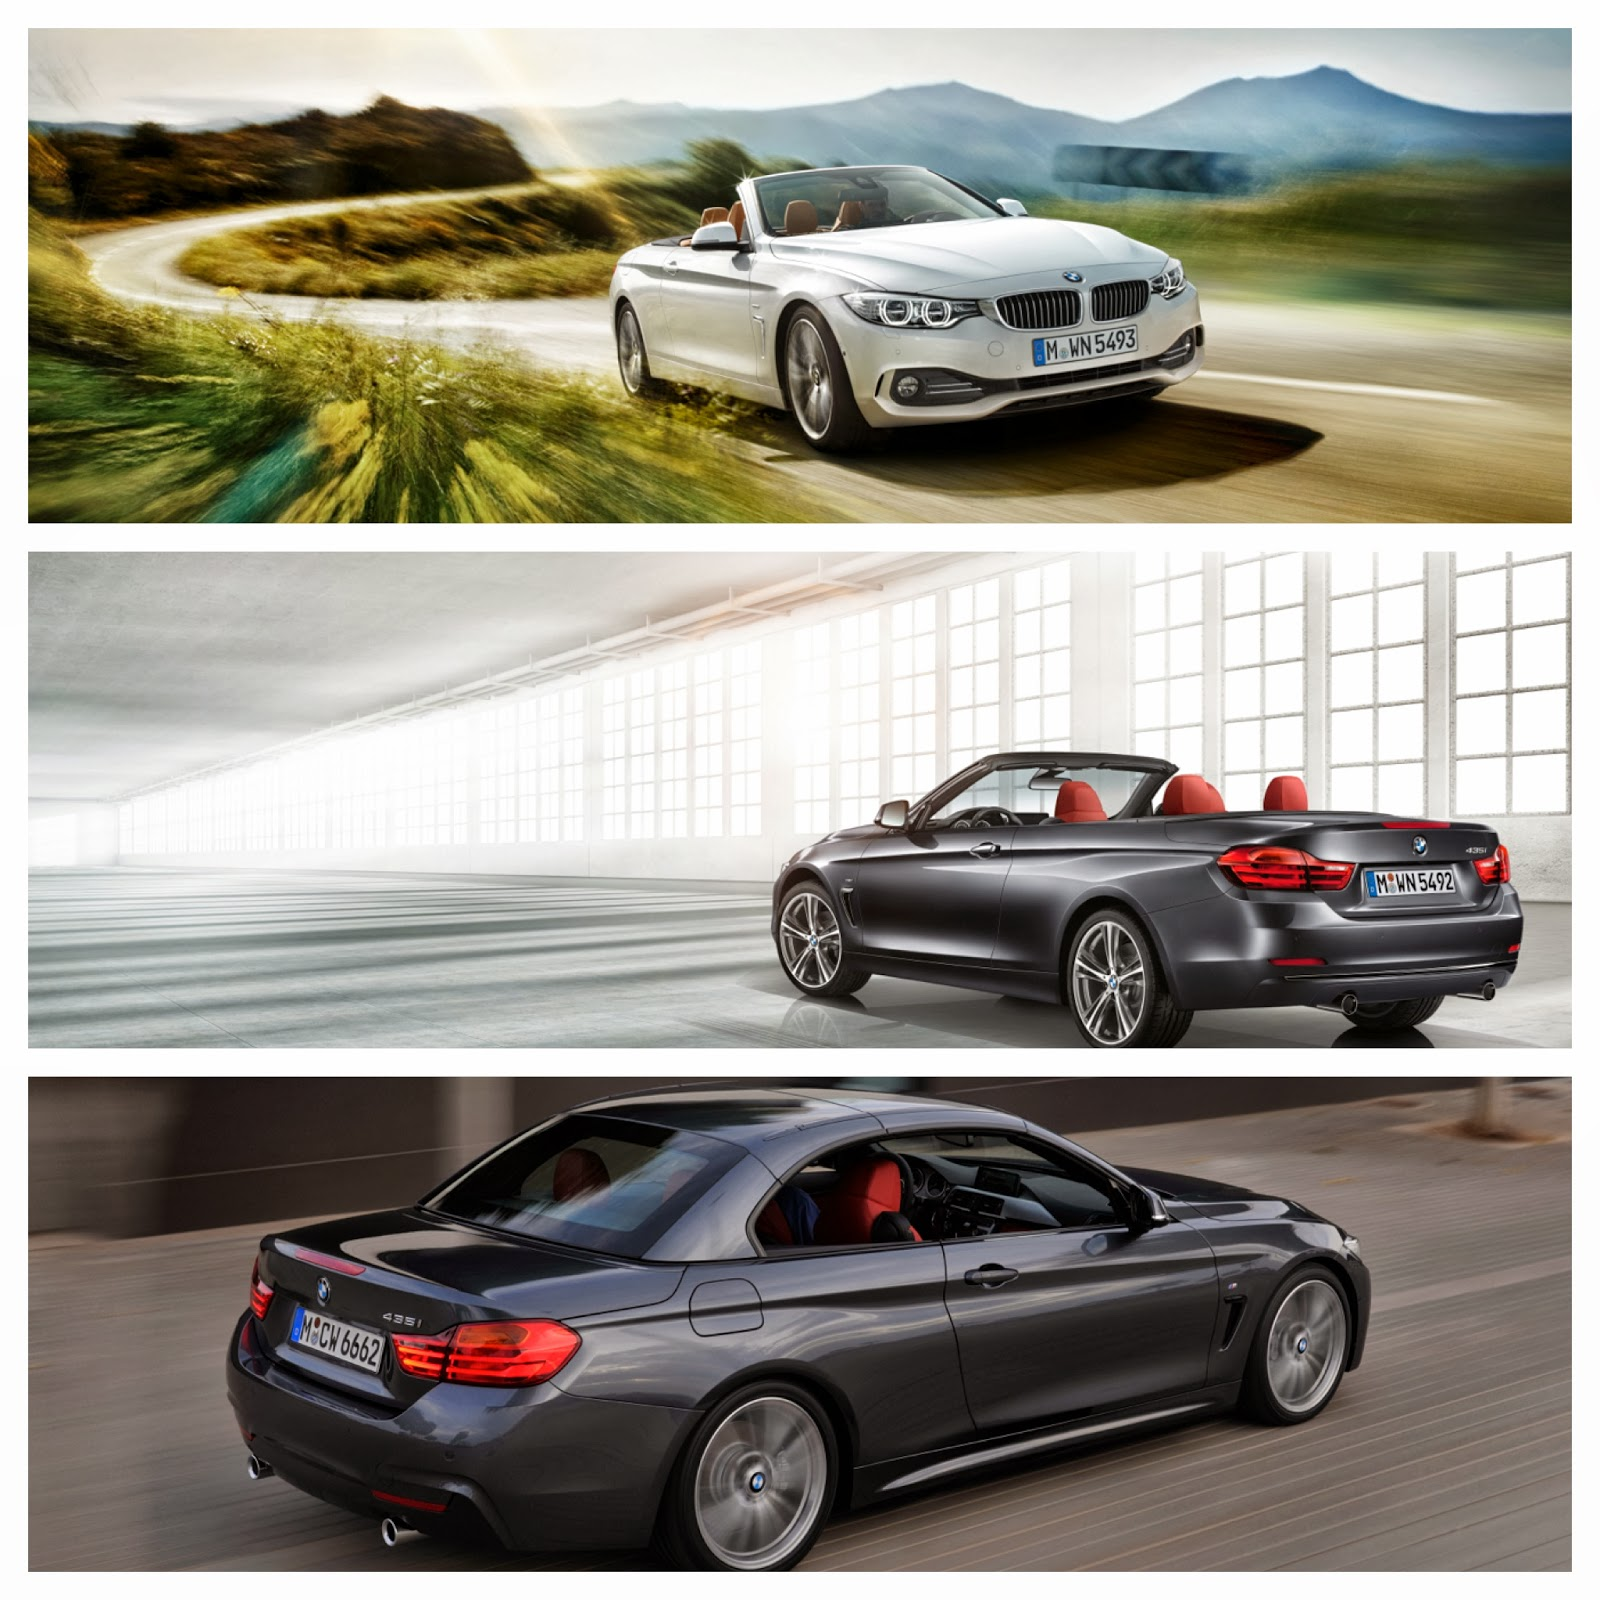 new bmw 4 series convertible cars life cars fashion lifestyle blog. Black Bedroom Furniture Sets. Home Design Ideas